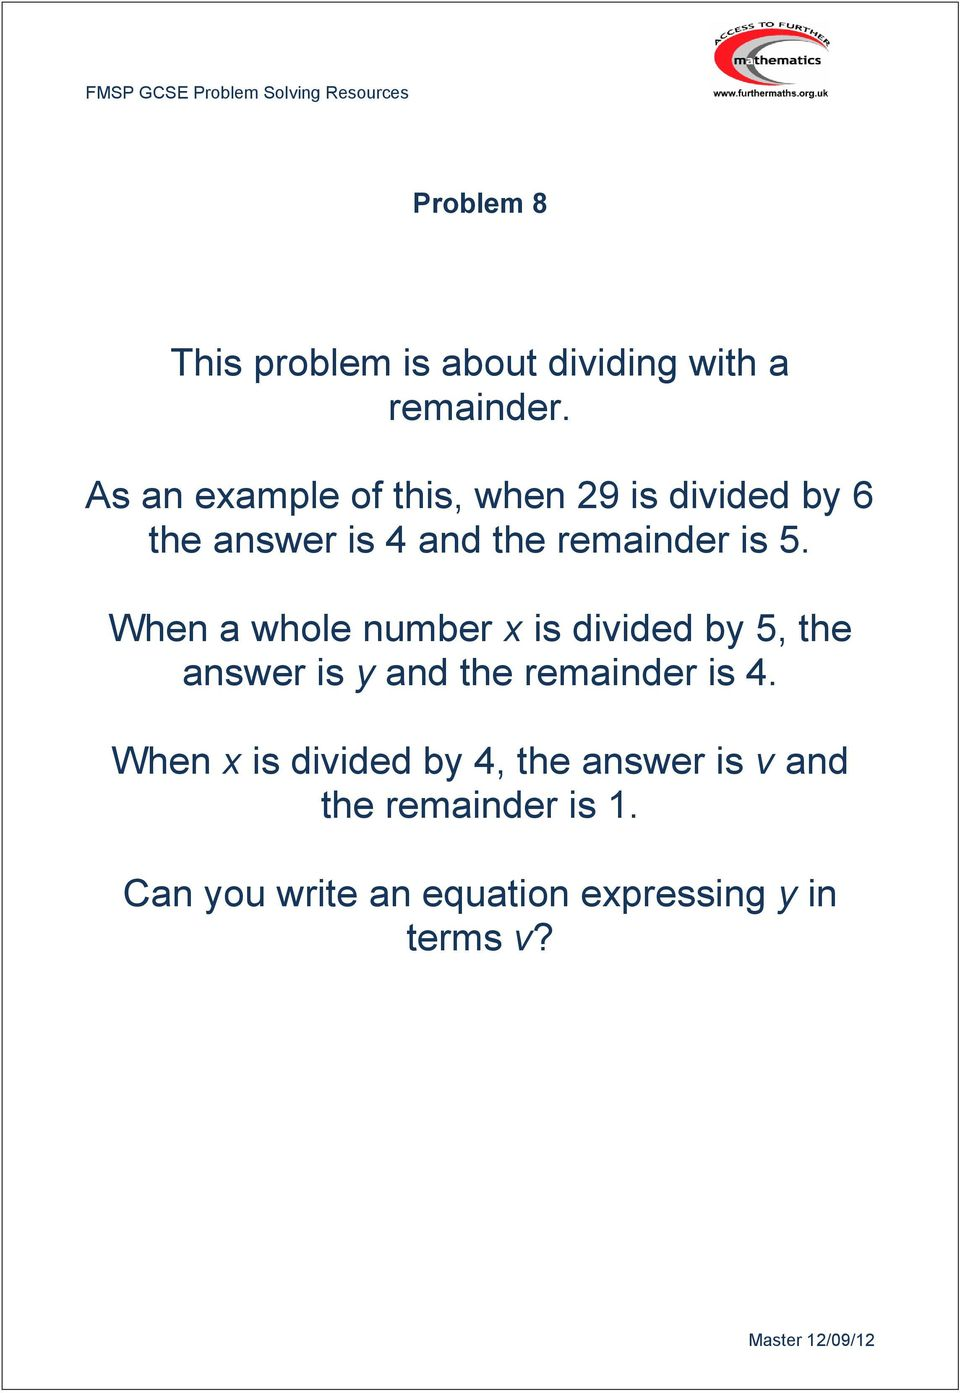 5. When a whole number x is divided by 5, the answer is y and the remainder is 4.